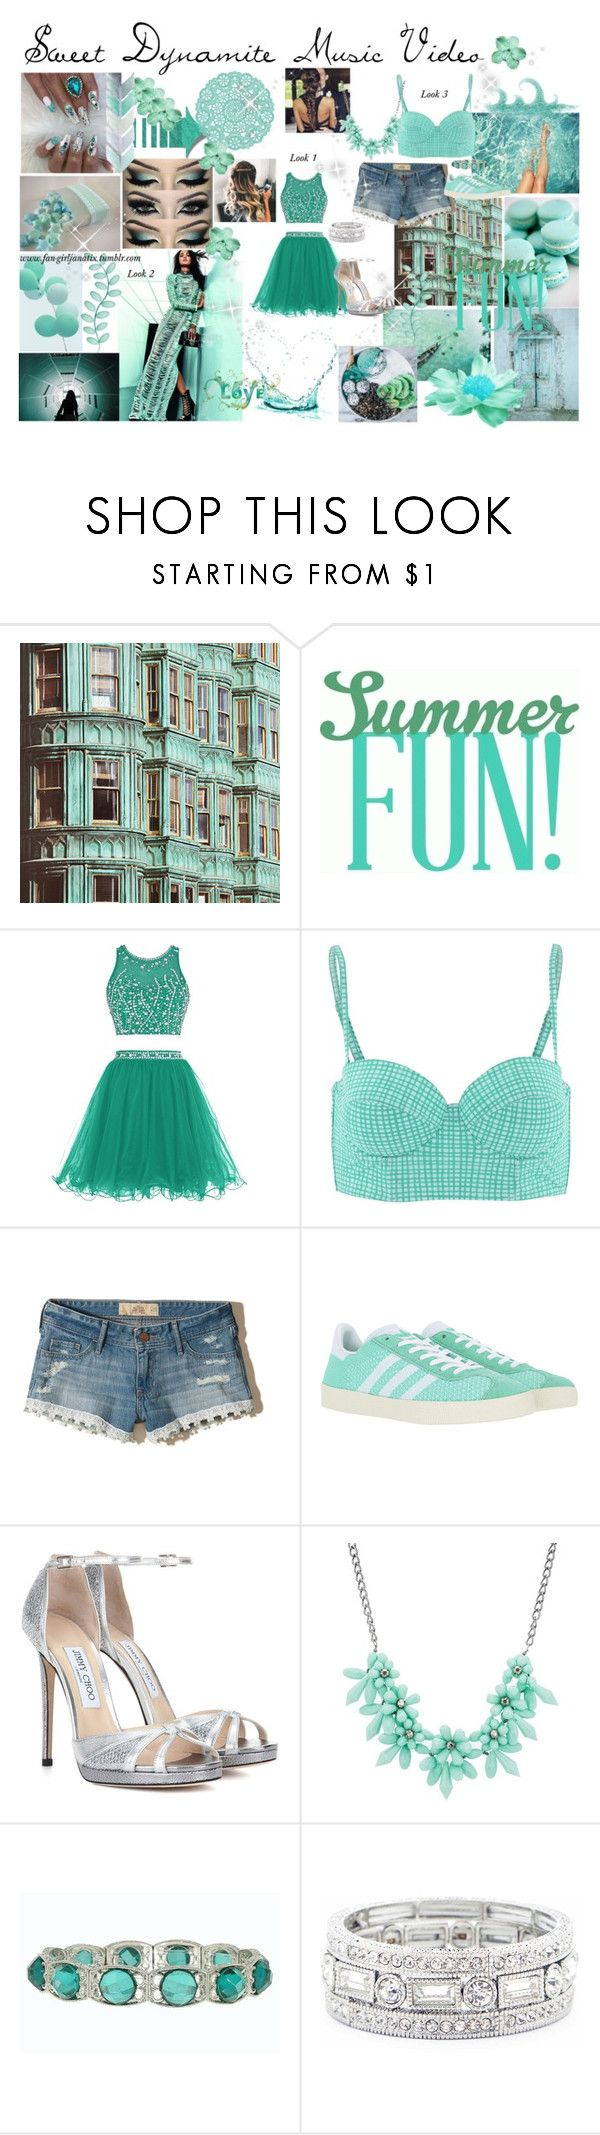 """OC Alyssa Caballero ~ Music Video"" by fan-girlfanatix ❤ liked on Polyvore featuring Calipige, Hollister Co., adidas Originals, China Glaze, Jimmy Choo, sweet deluxe, 1928, Sole Society and Atlantis"